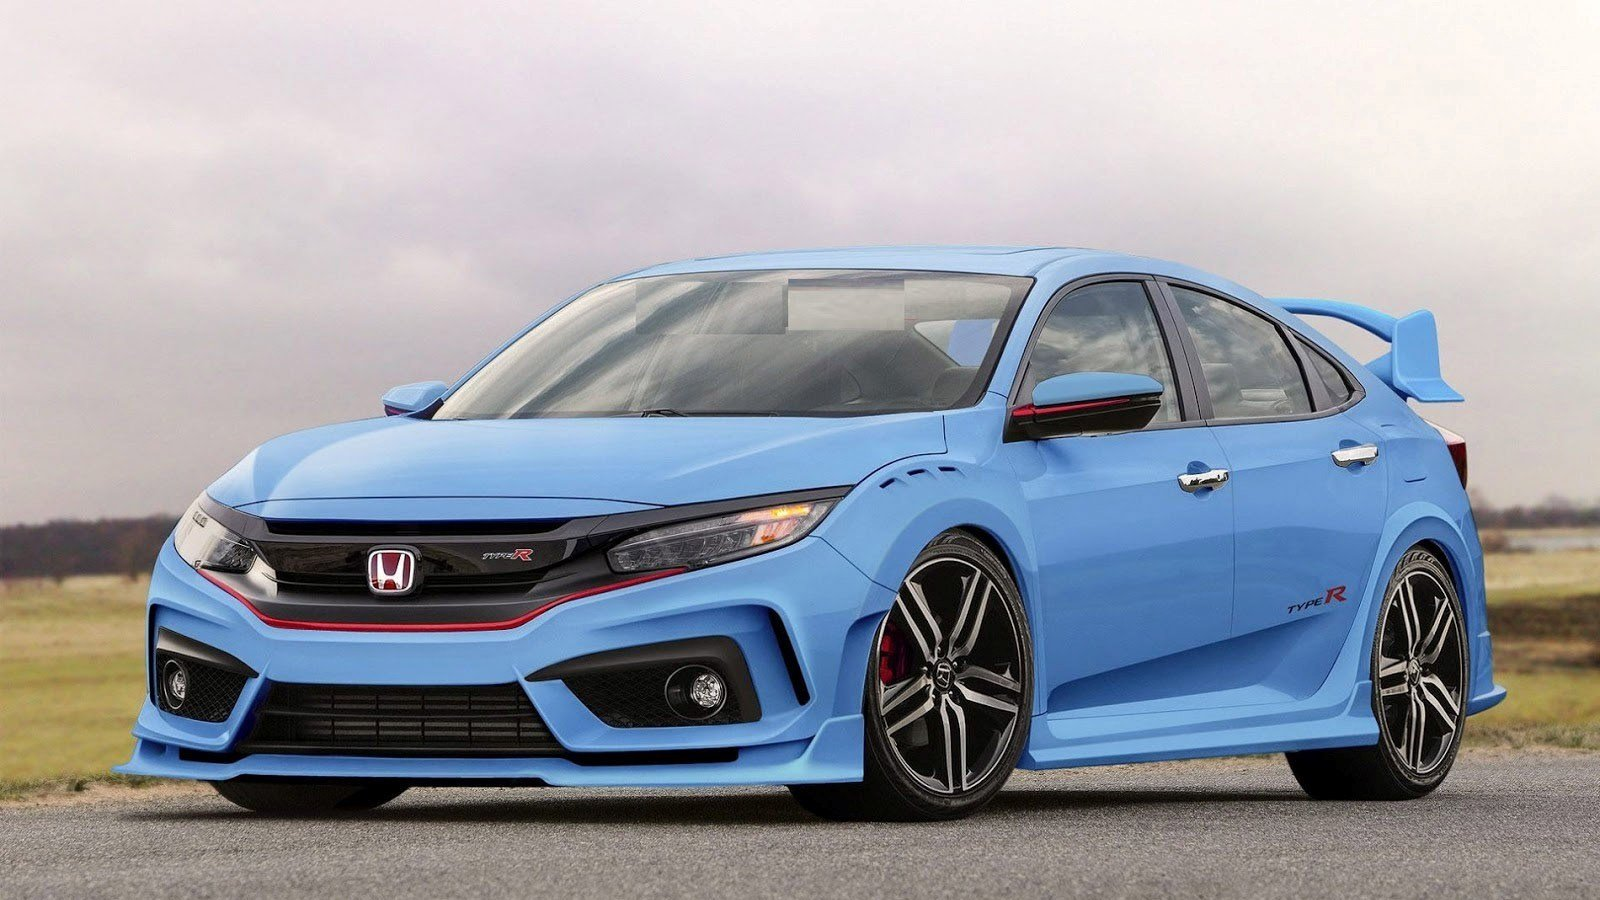 New 2018 Honda Civic Si Coupe Car Hd Wallpapers On This Month